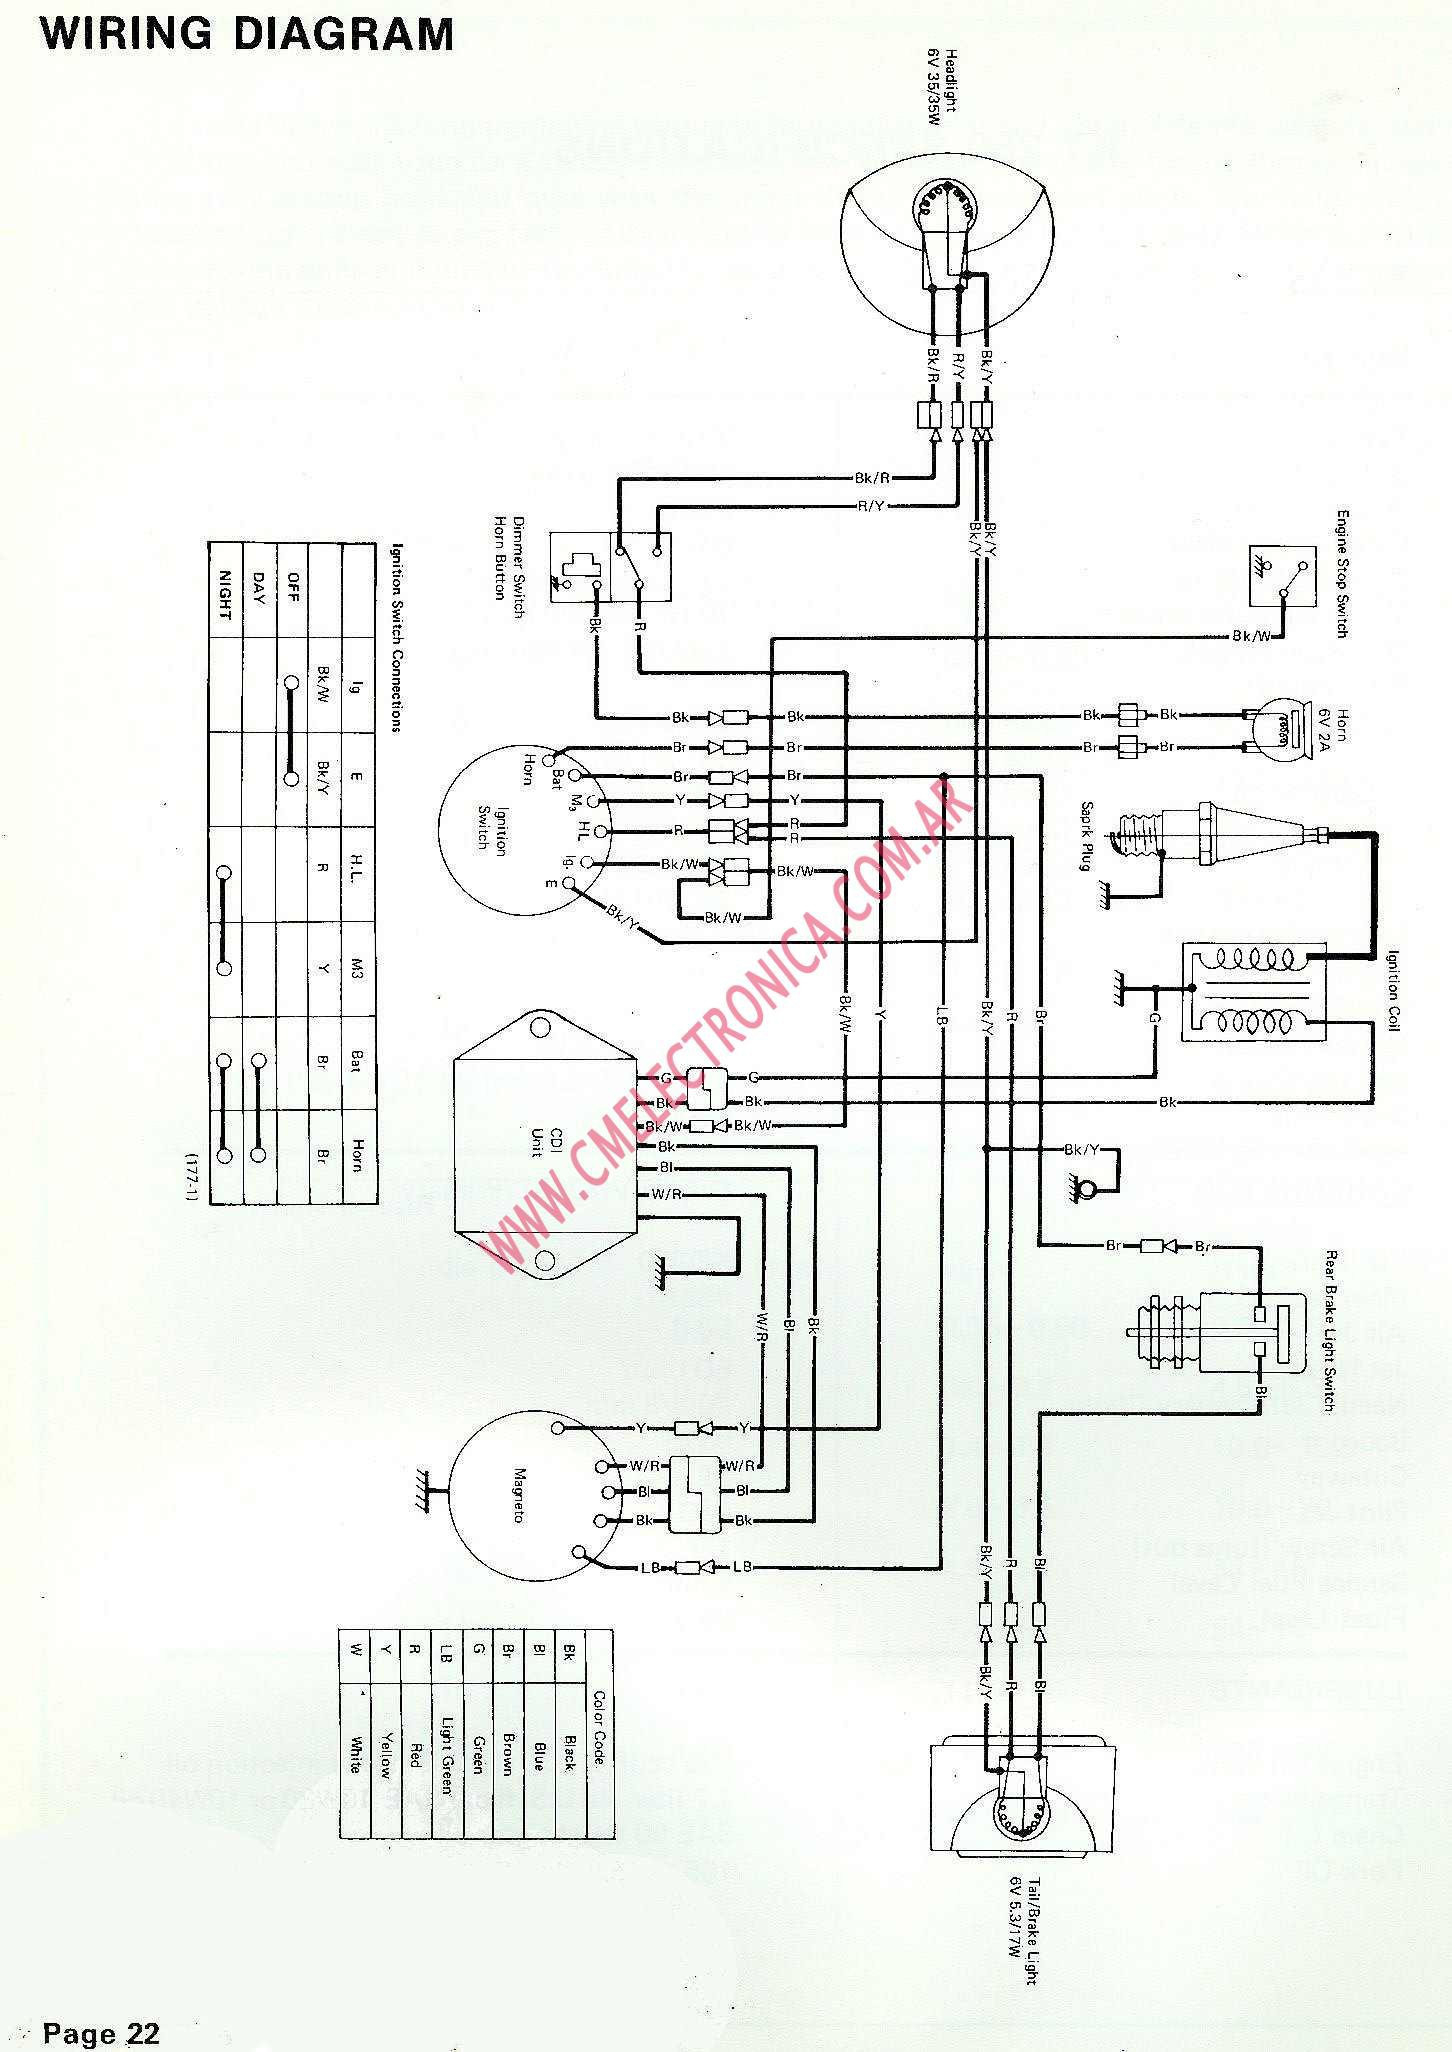 hight resolution of xsvi 6502 nav wiring diagram collection yamaha golf cart wiring diagram best timberwolf wikishare 6 download wiring diagram